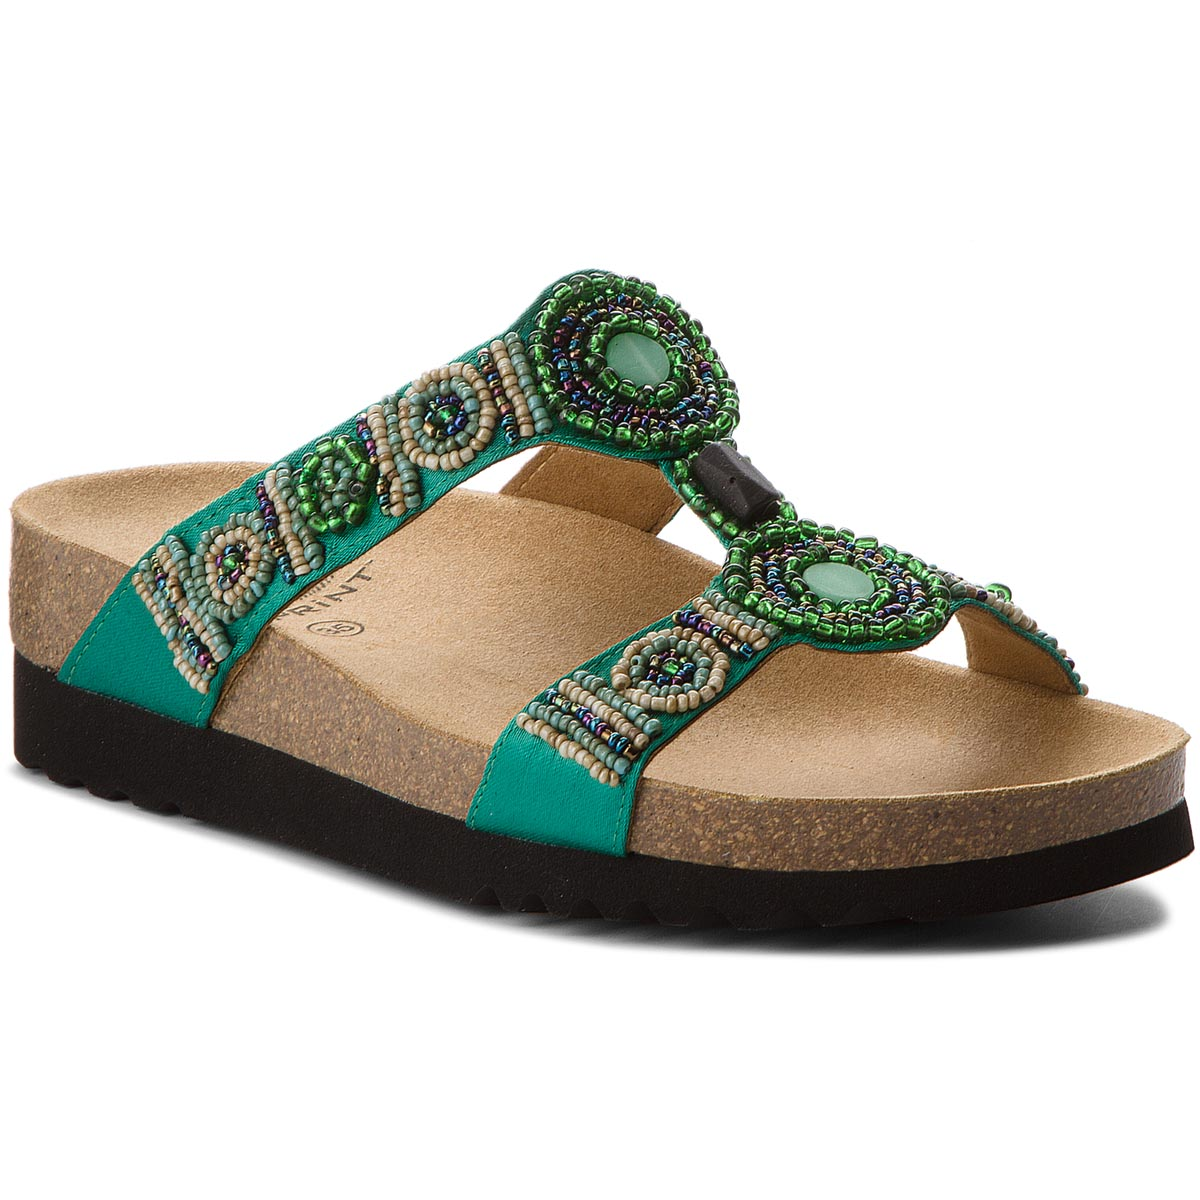 Klapki SCHOLL - New Bogota Wedge F26607 1361 350 Emerald